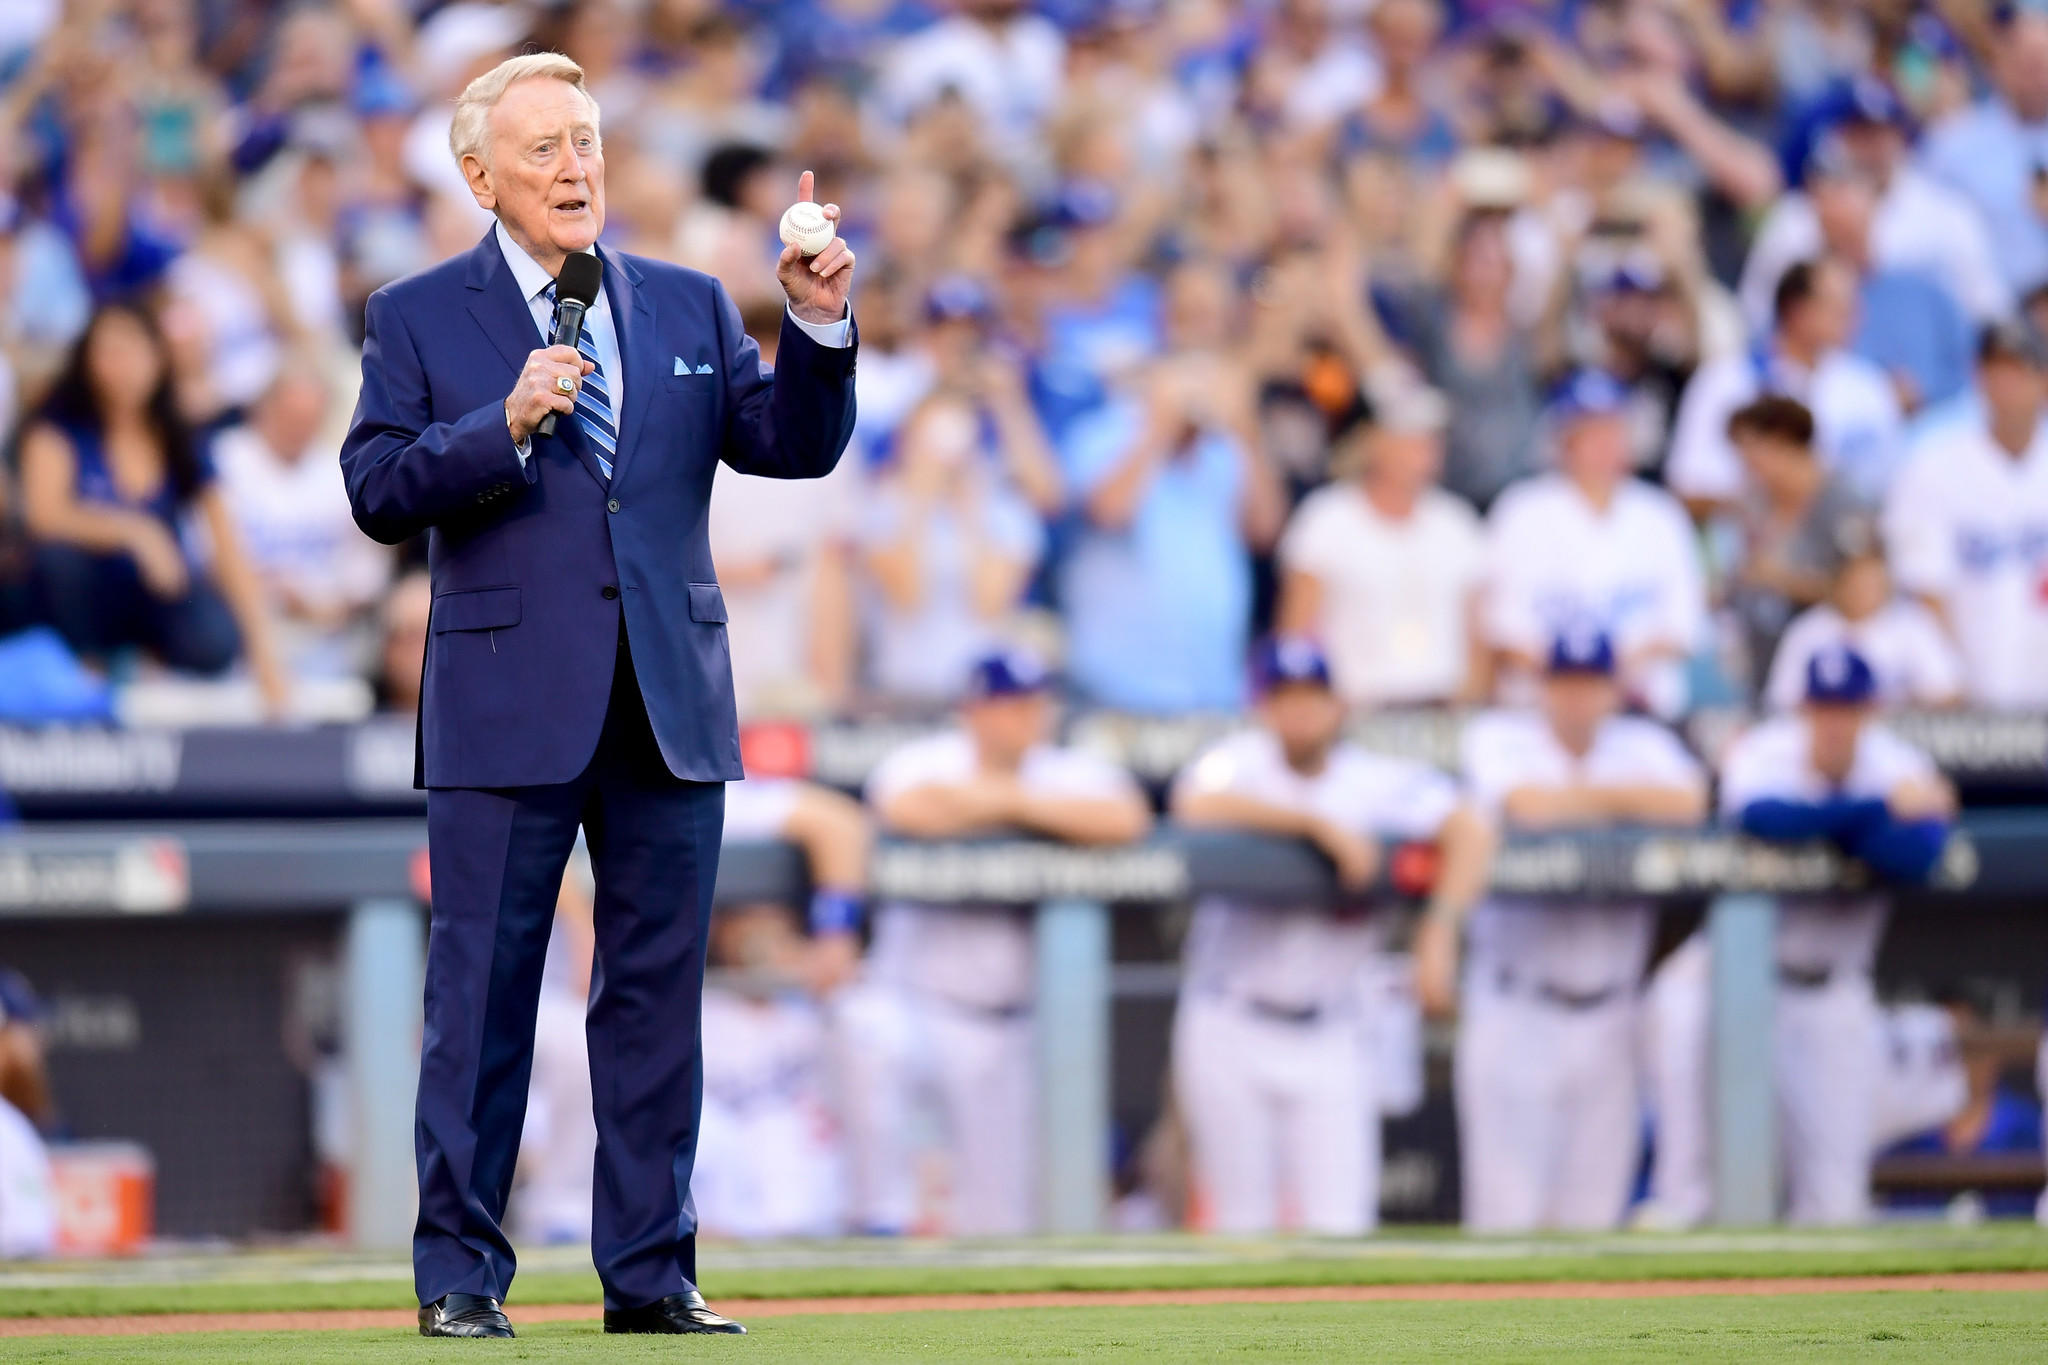 Vin Scully gets help perfectly throwing out first pitch